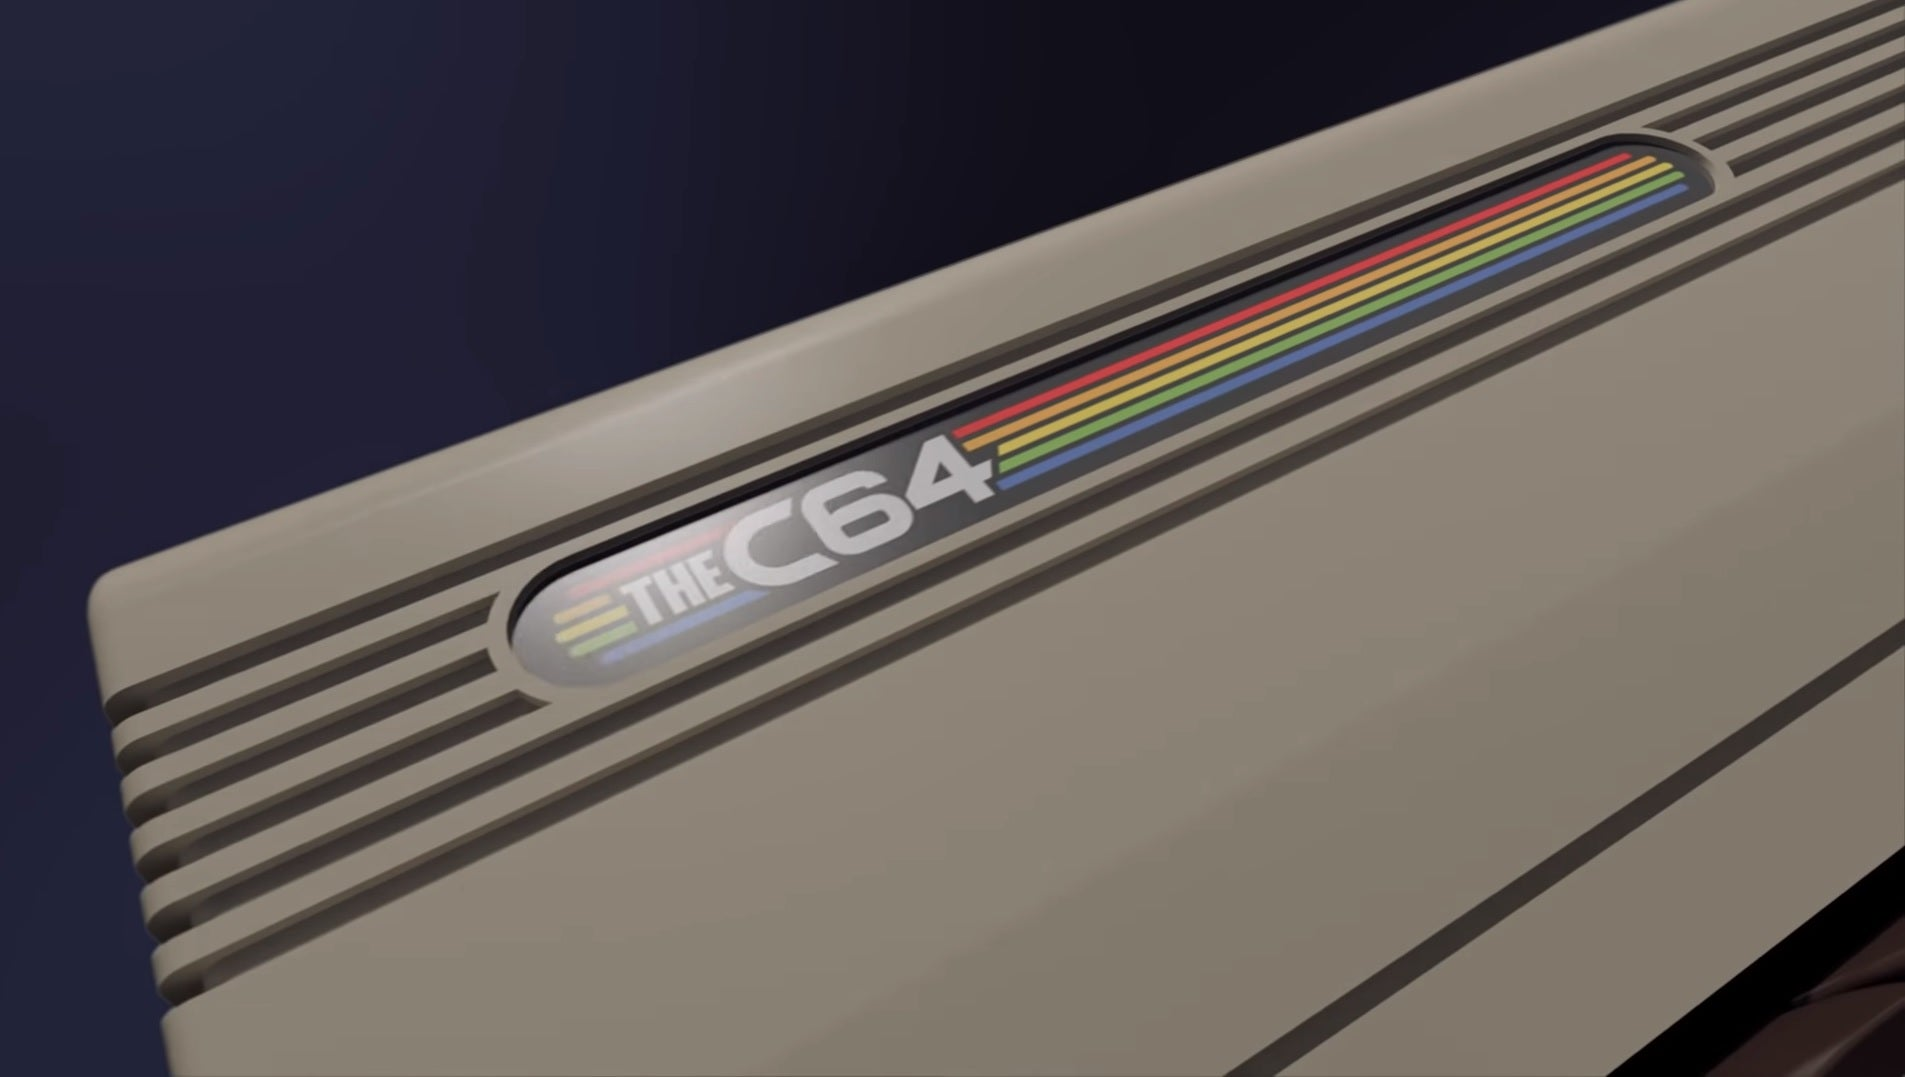 THEC64, ALIAS LA COMMODORE DE 2019